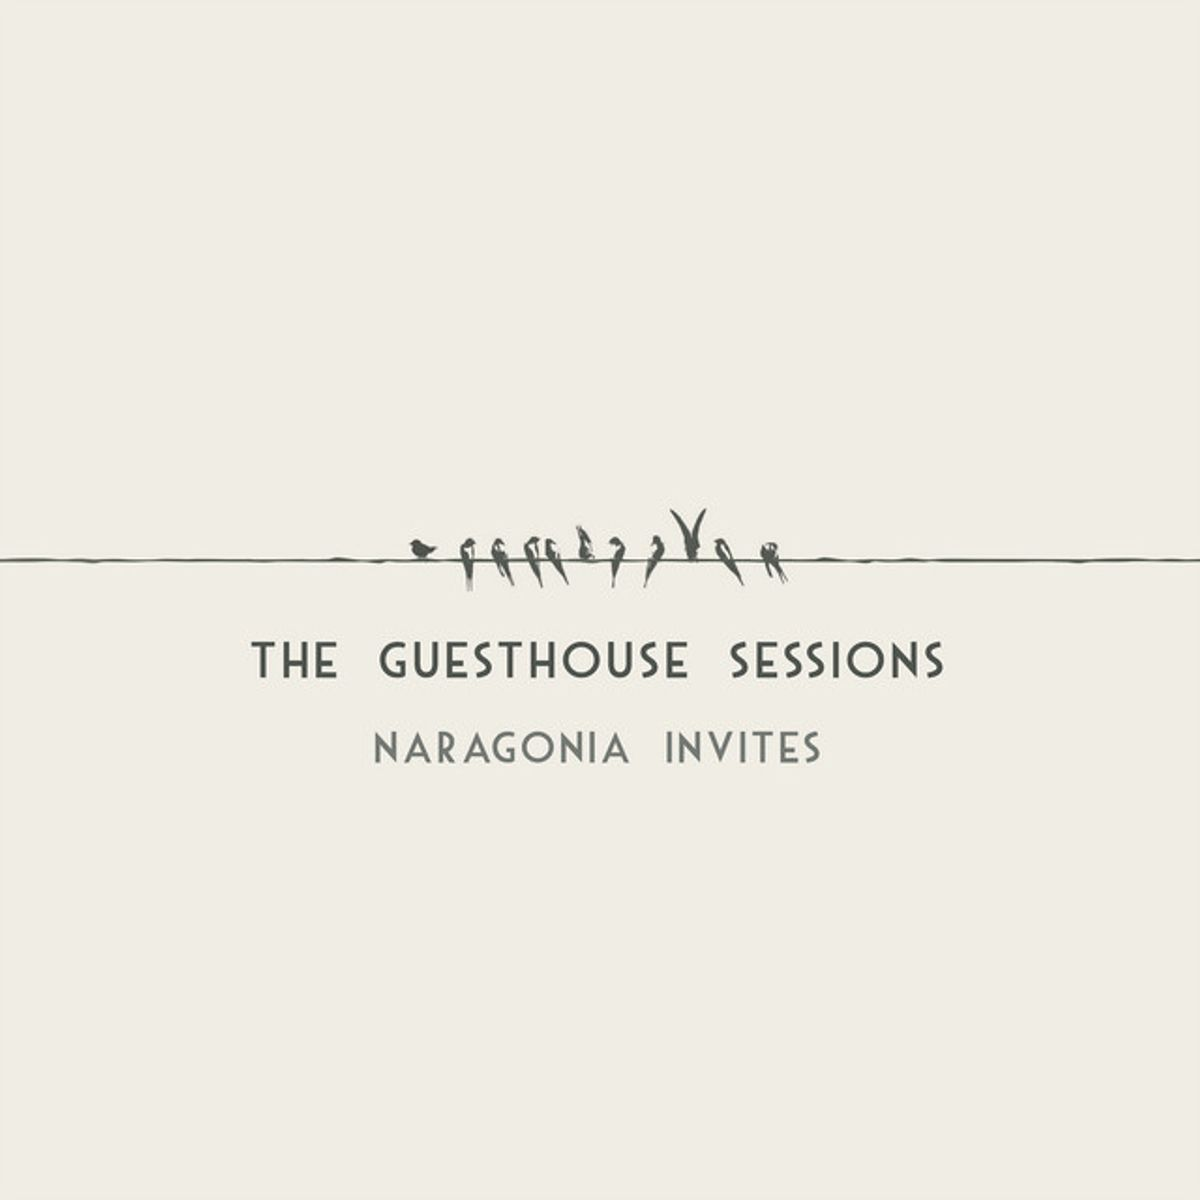 The Guesthouse Sessions